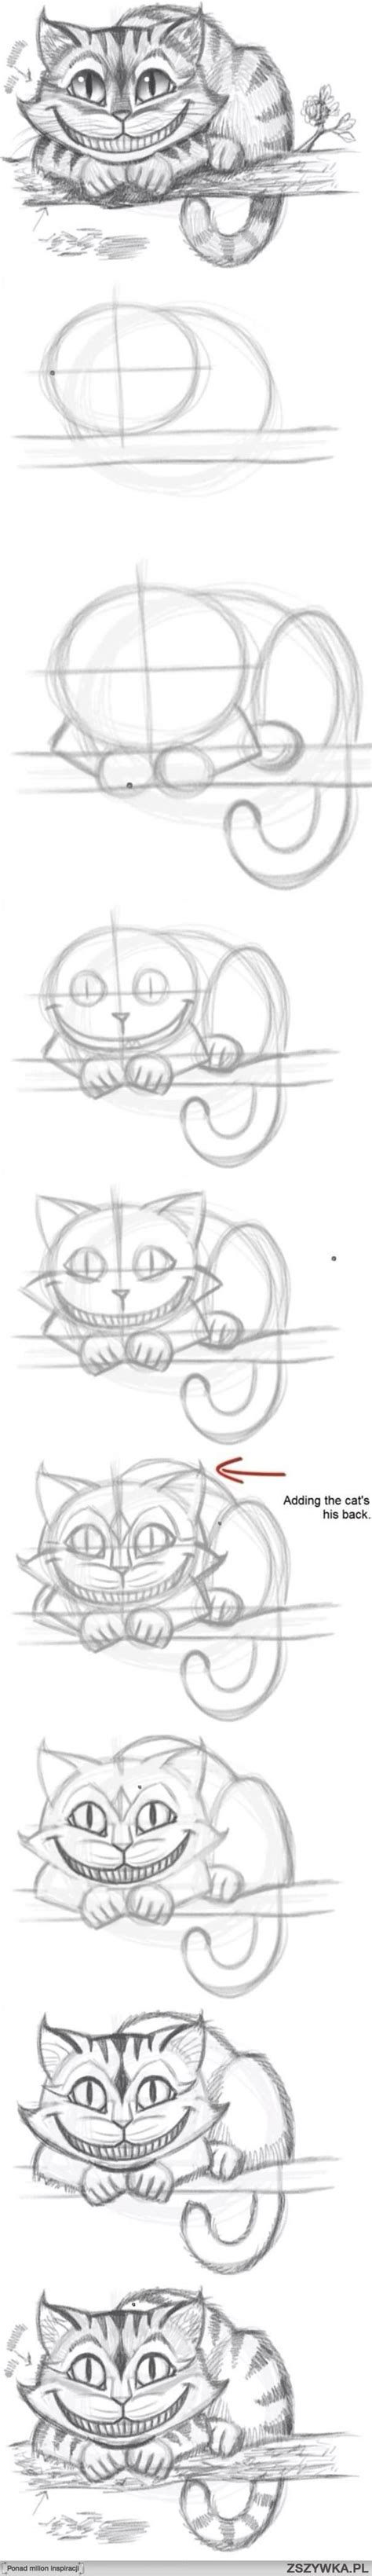 tutorial scribble sketchbook best 20 drawing of a cat ideas on pinterest how to draw